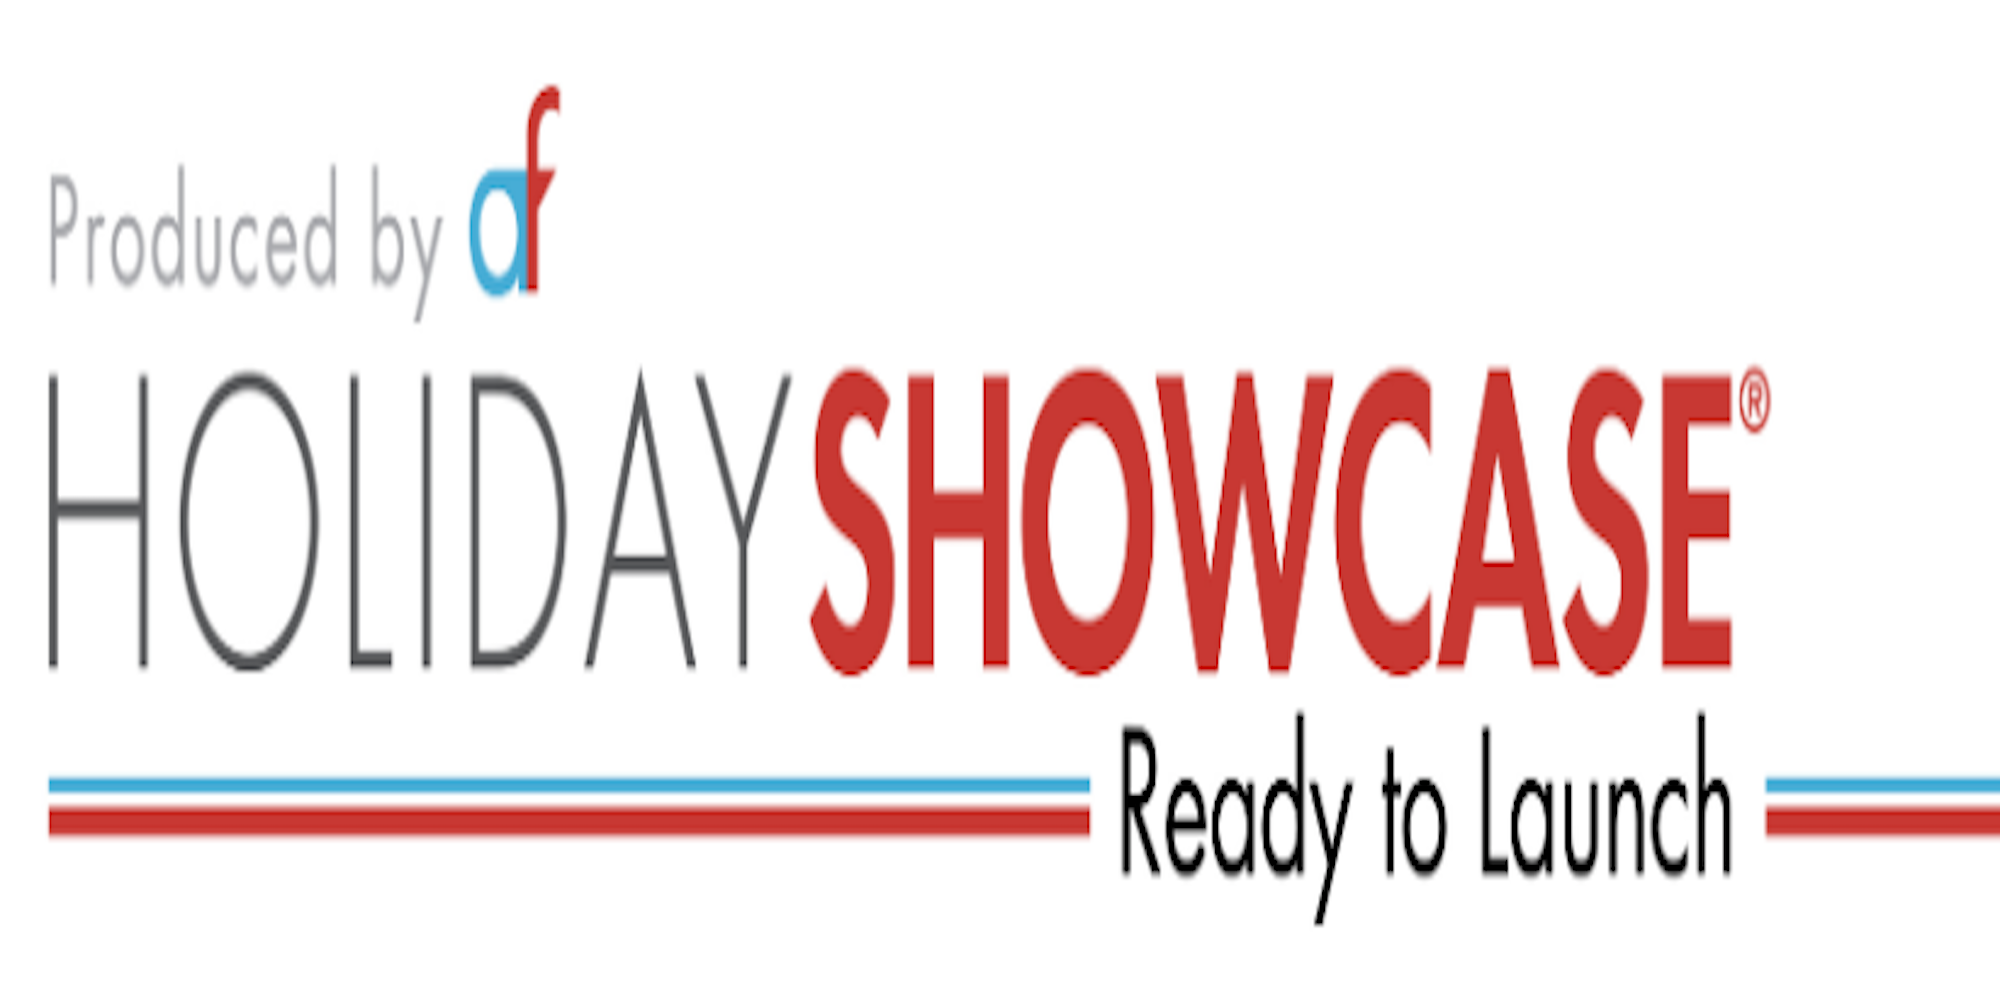 Association Forum Holiday Showcase